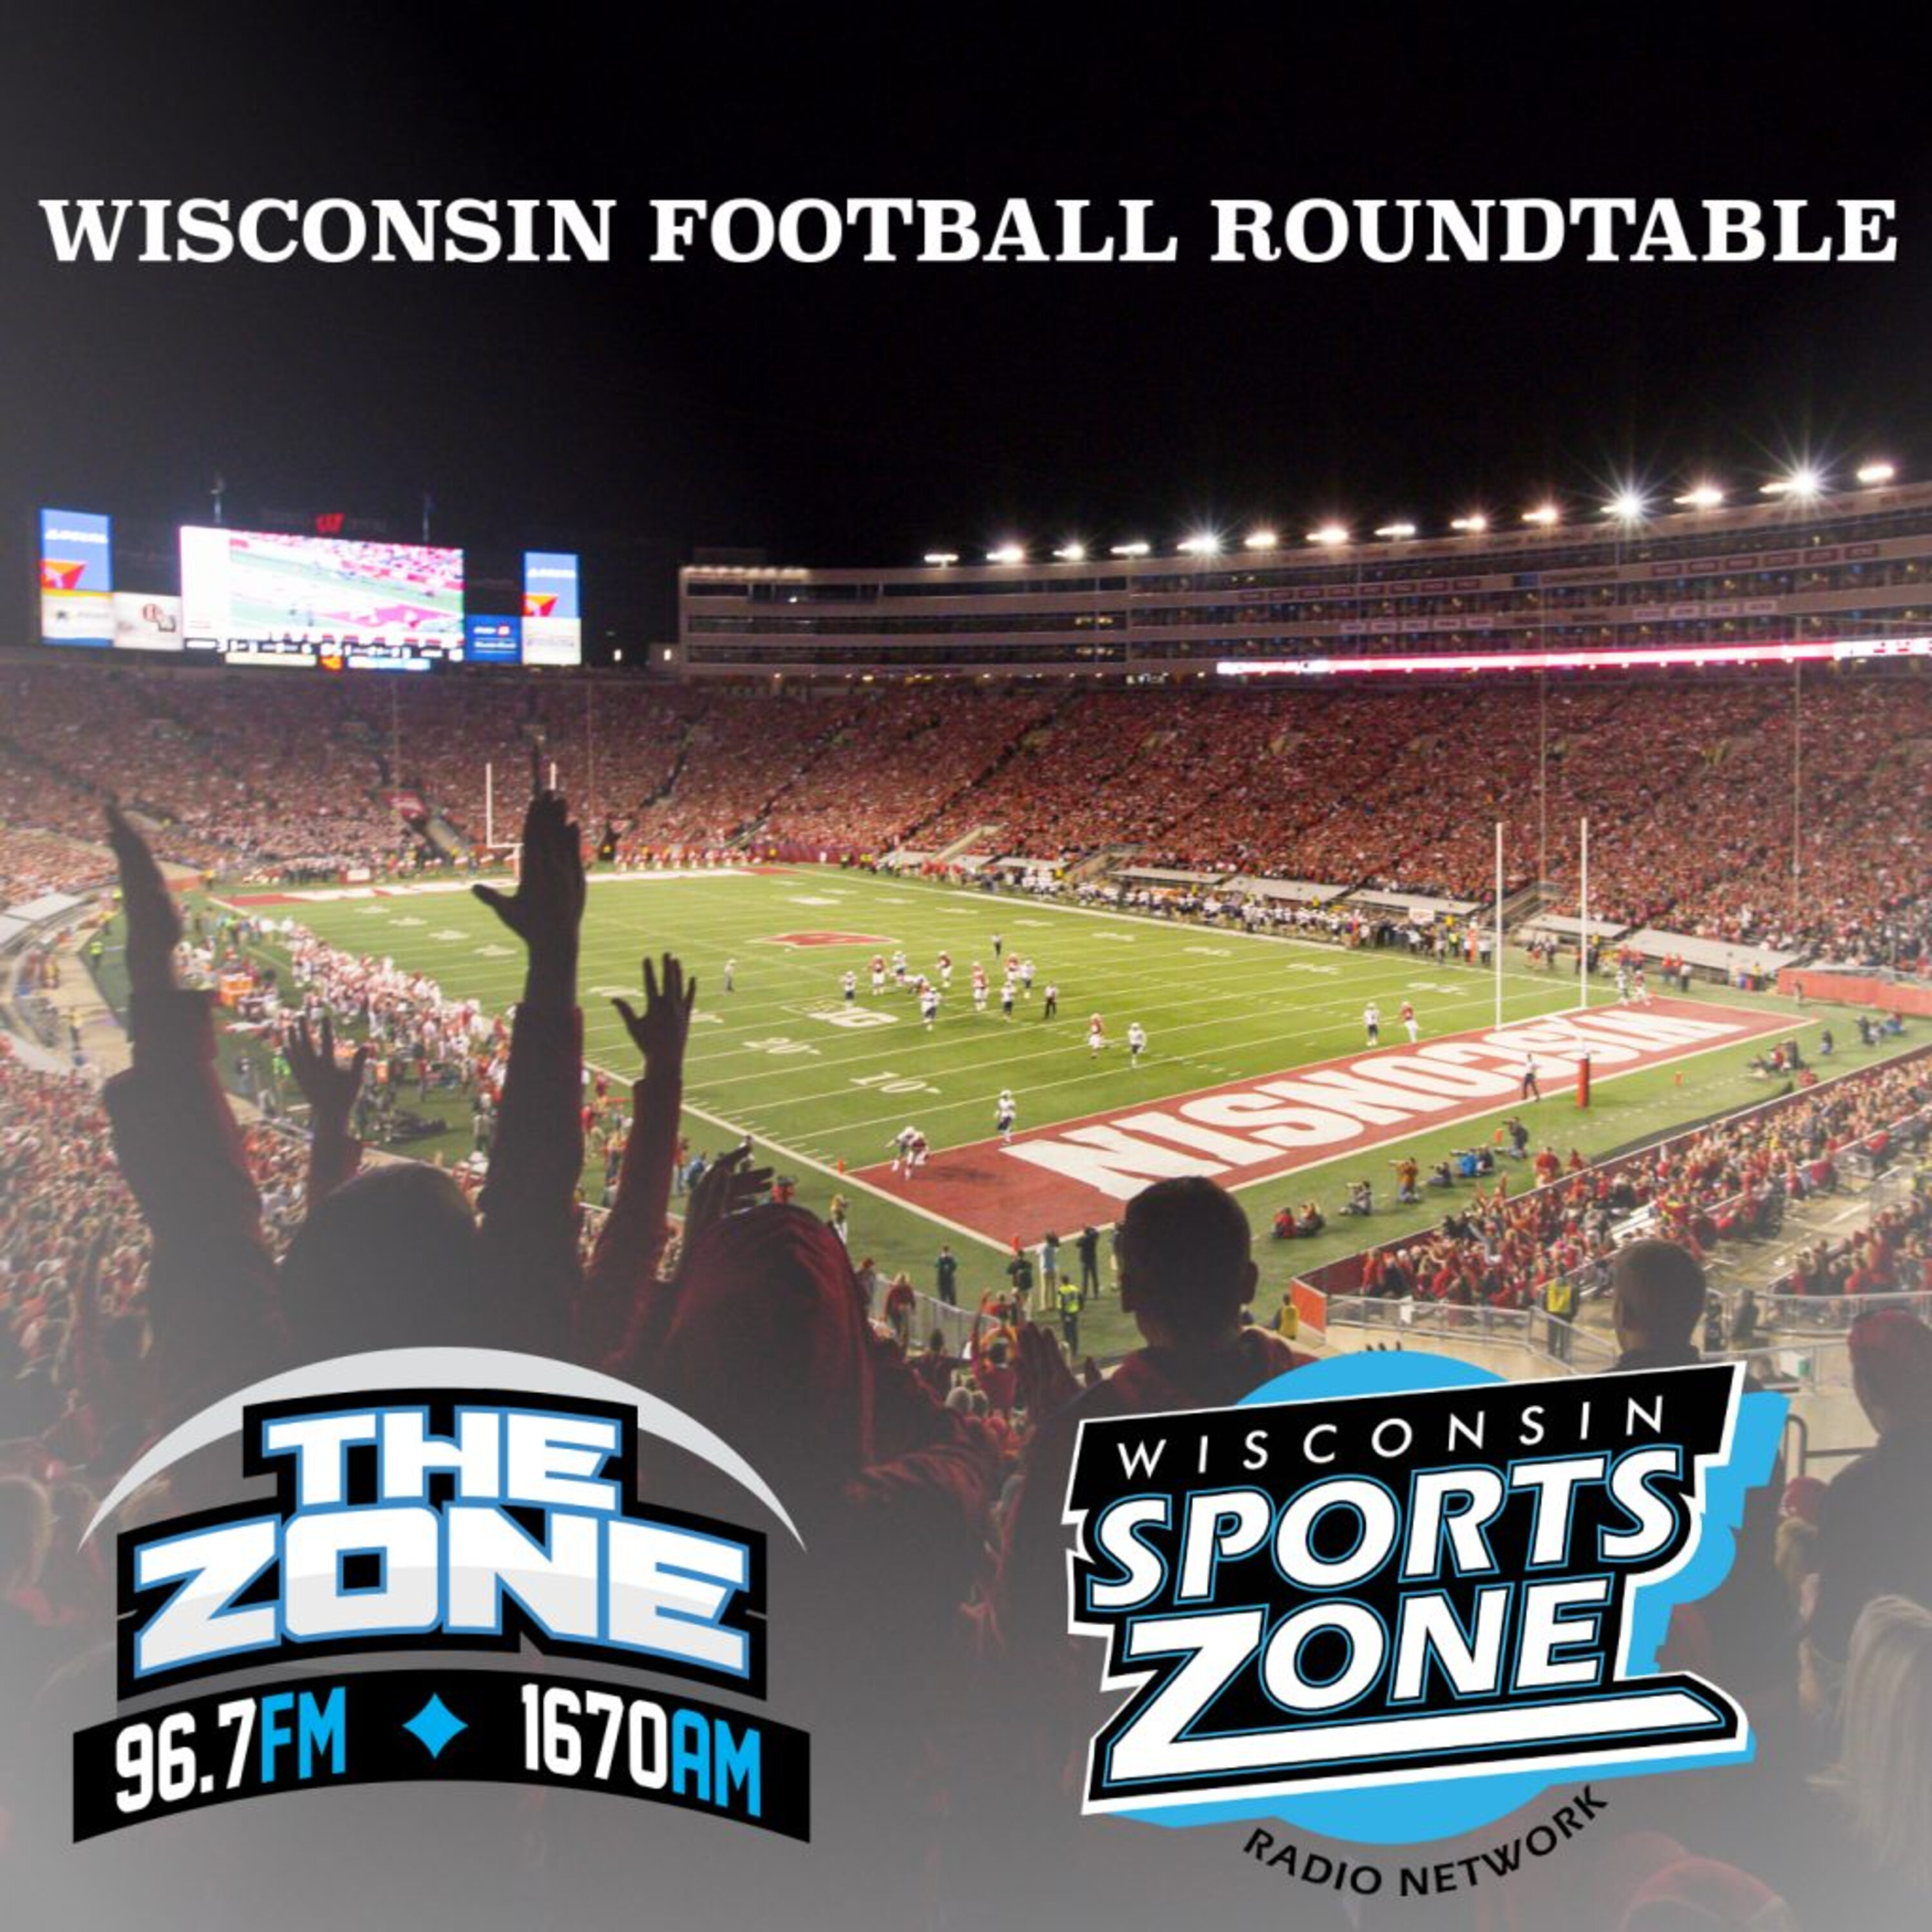 Wisconsin Football Roundtable: Sept. 5, 2019